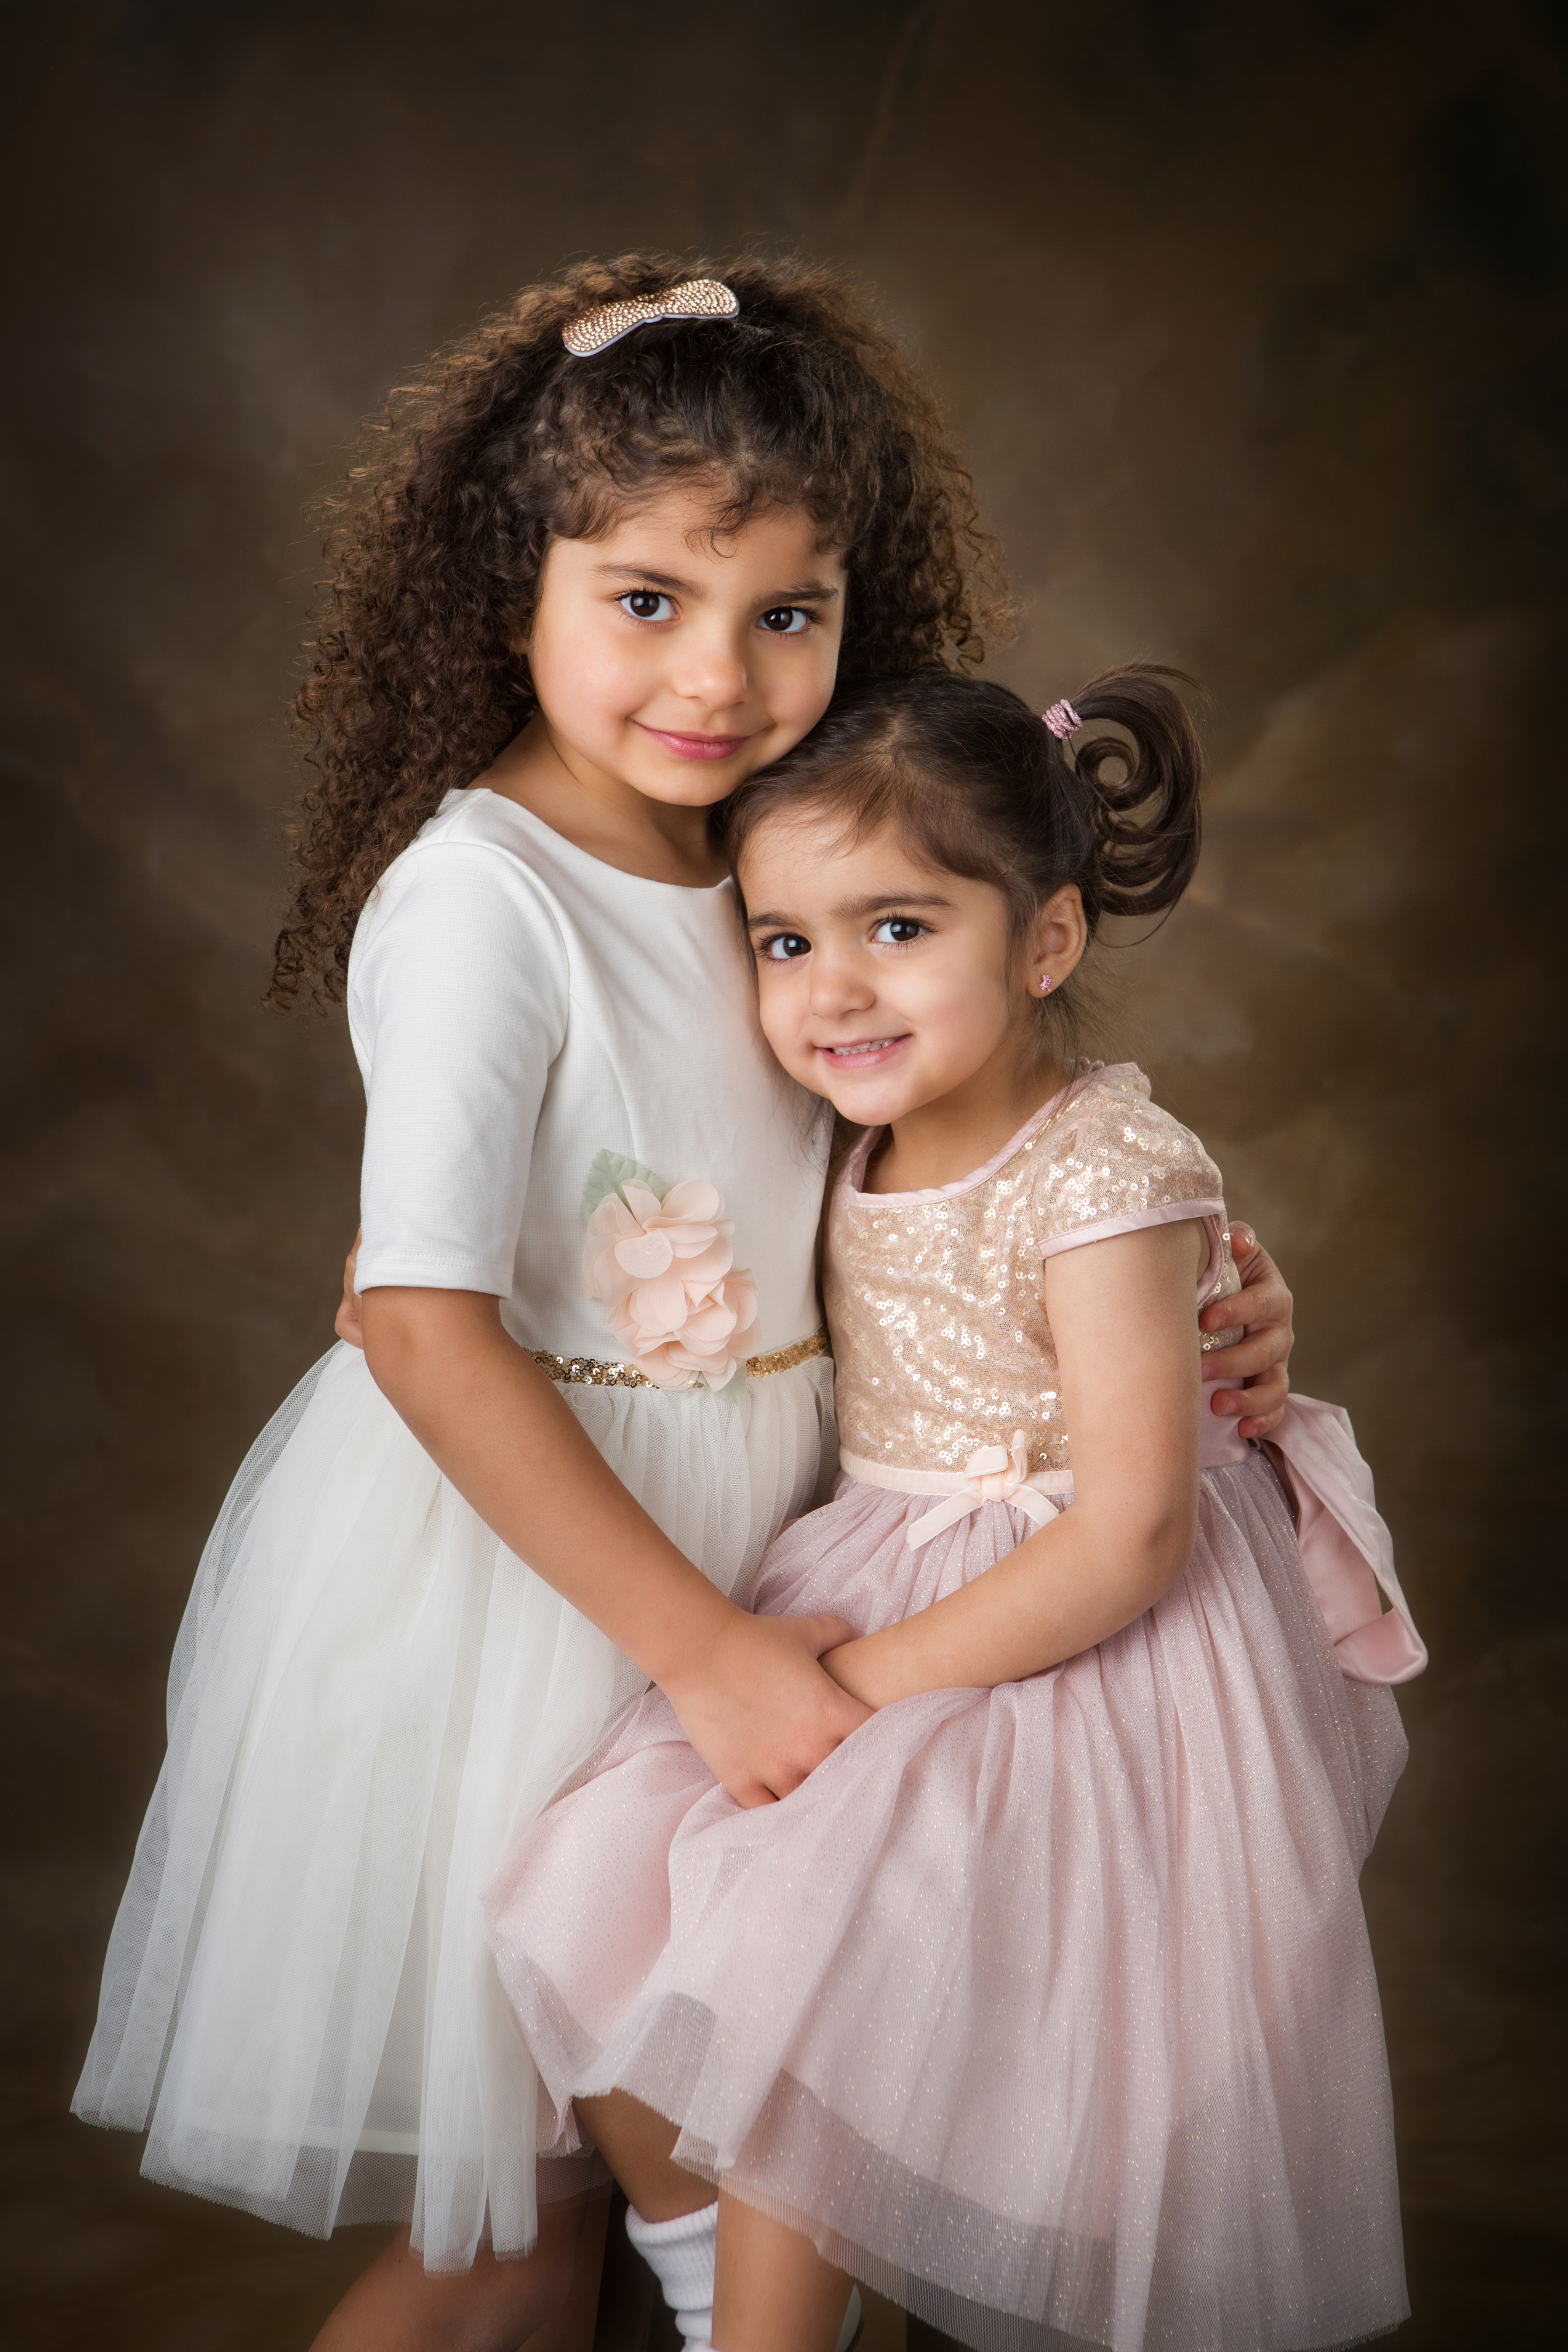 Young sisters in white and pink dresses with their arms around each other